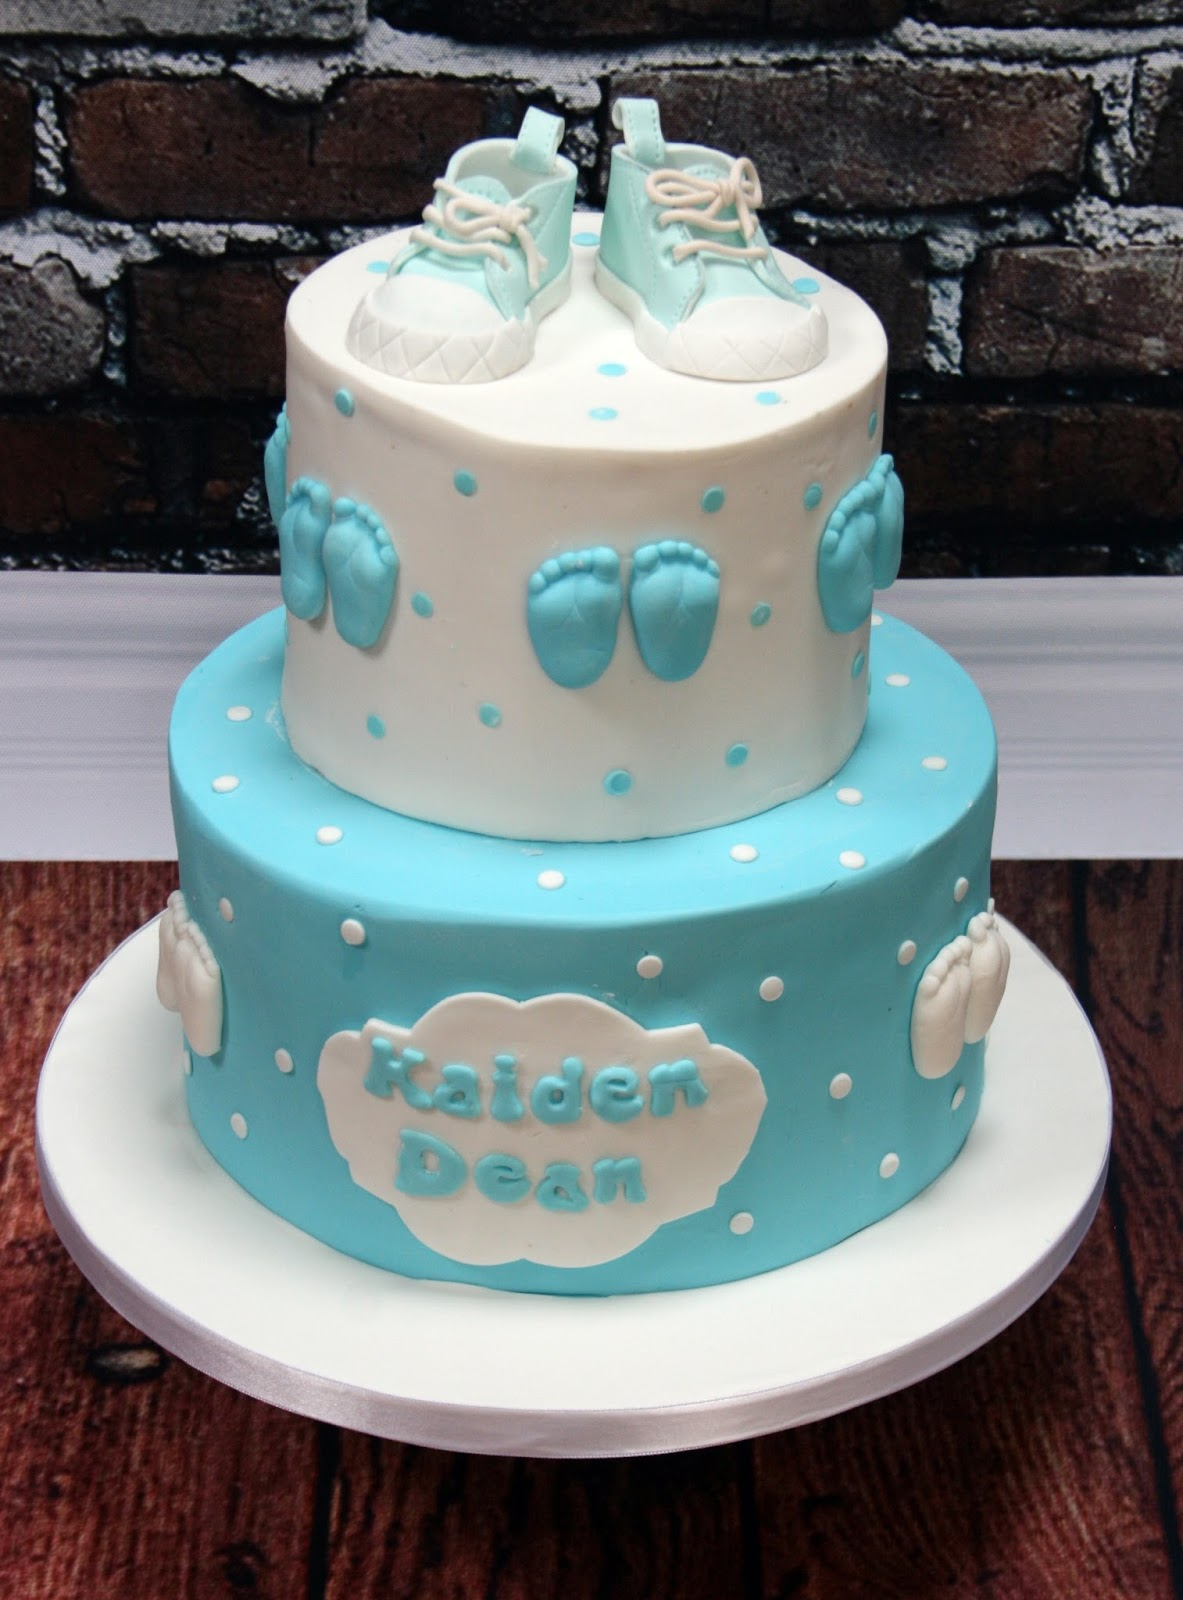 The Perfectionist Confectionist Kaiden Dean